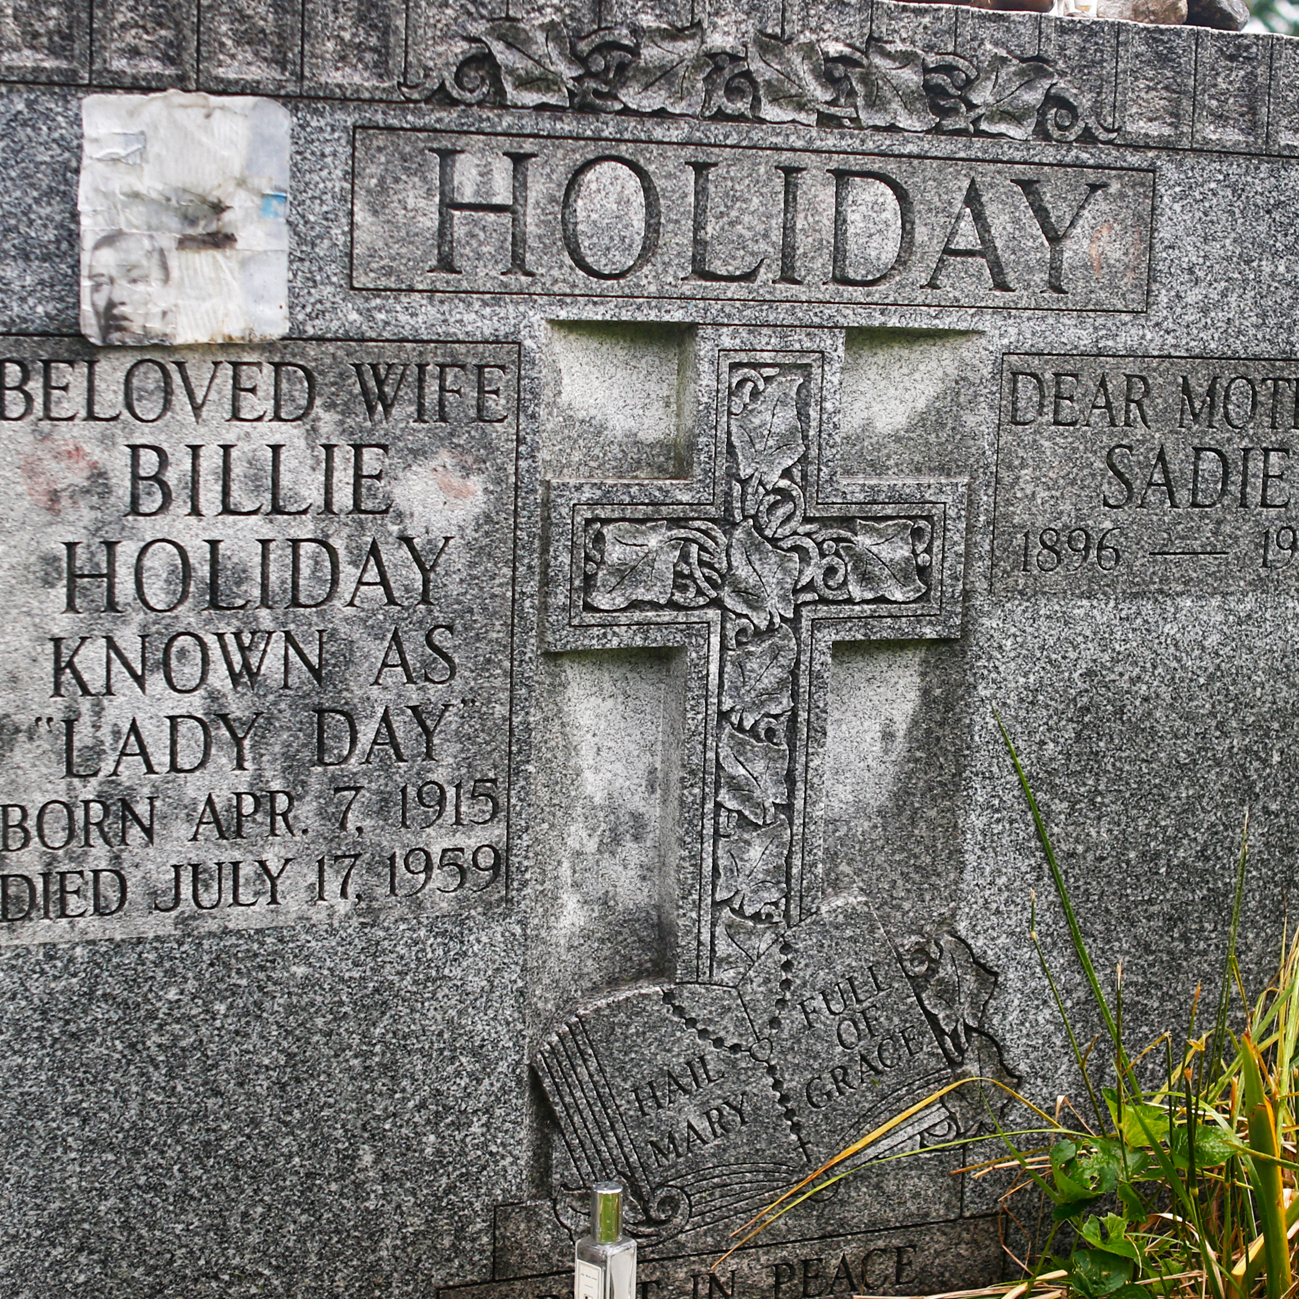 Billie Holiday, who died on July 17, 1959, is buried alongside her mother, Sadie Fagan, in St. Raymond's Cemetery in the Bronx.